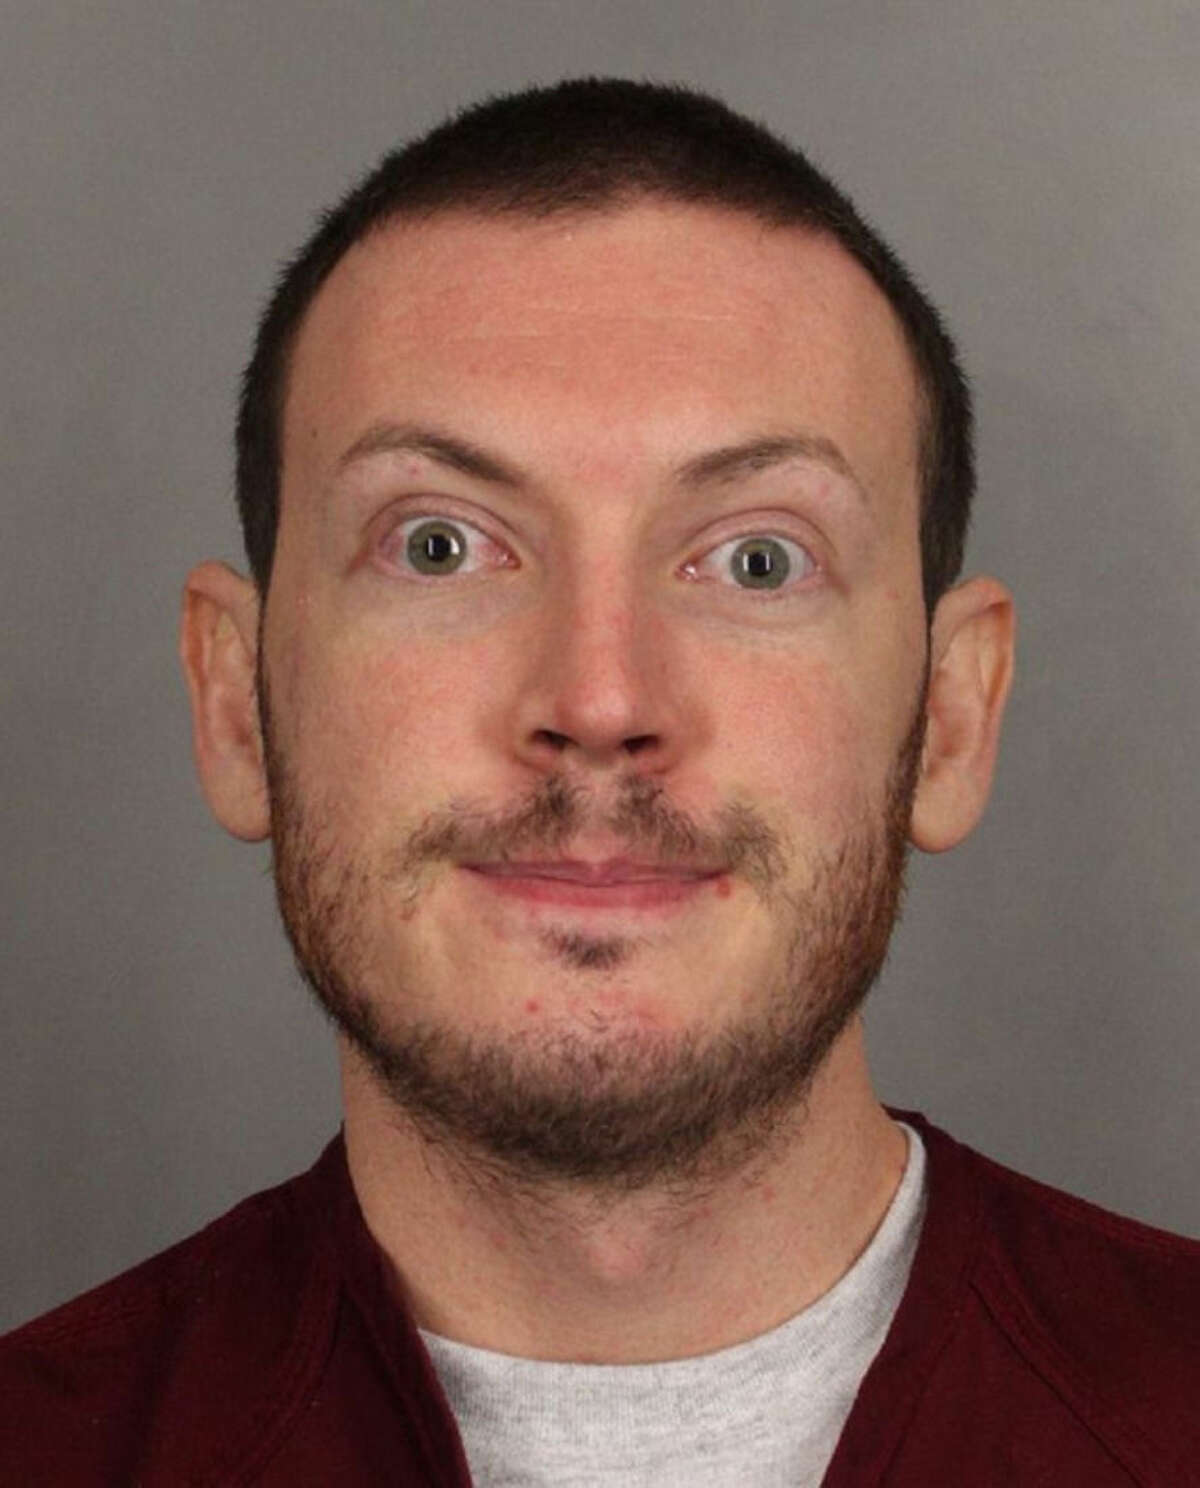 FILE - This file photo released on Sept. 20, 2012 by the Arapahoe County Sheriff's Office shows Colorado movie theater shooter James Holmes. While on the stand on July 28 and 29, 2015, Robert Holmes testified that his son came home from winter break from graduate school in 2011, several months before the shooting, and was making odd facial expressions which his parents had not seen in him before. (AP Photo/Arapahoe County Sheriff via AP)